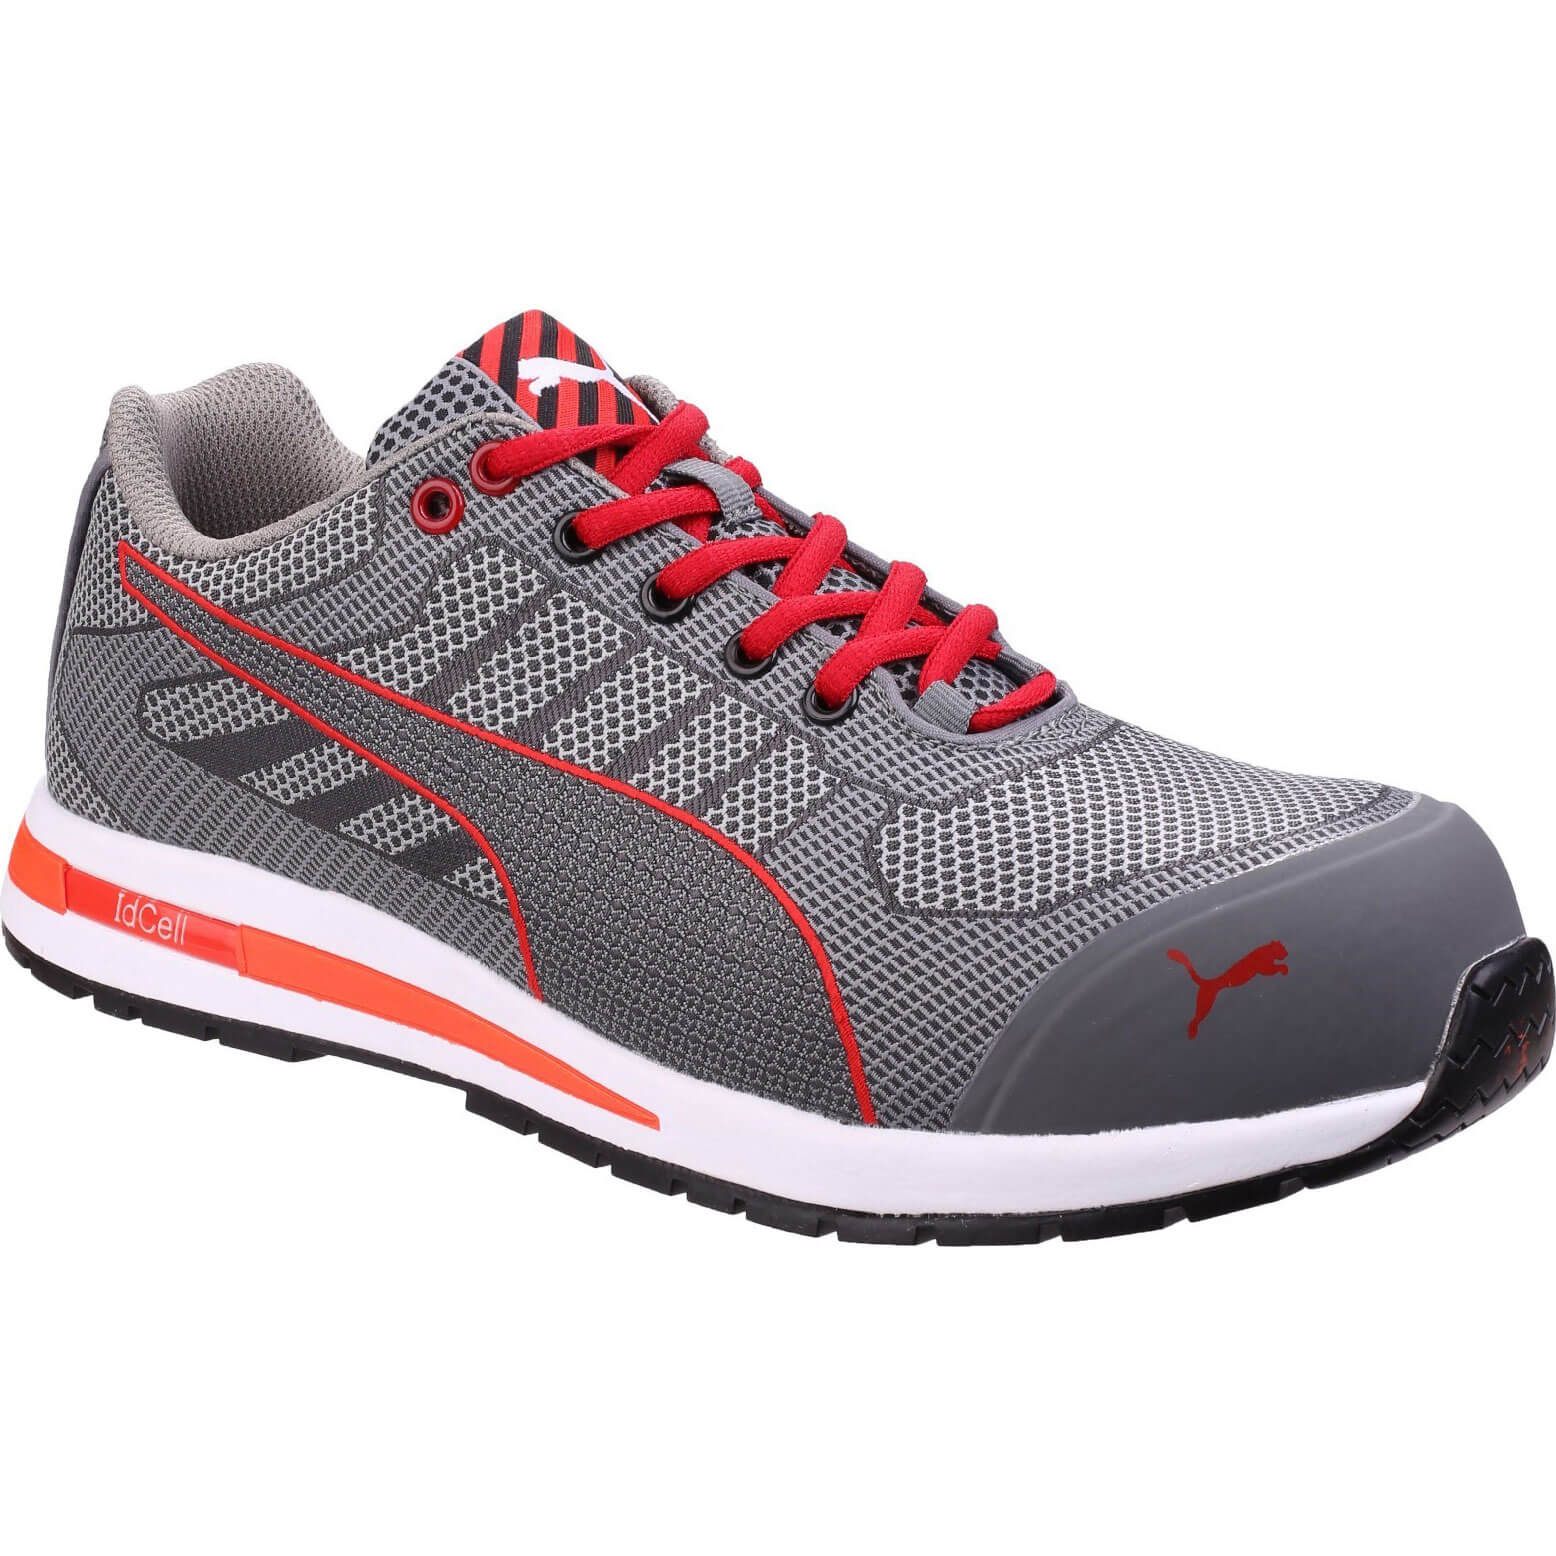 CHEAP Puma Safety Xelerate Knit Low Safety Trainer Grey Size 7 – Men's Footwear